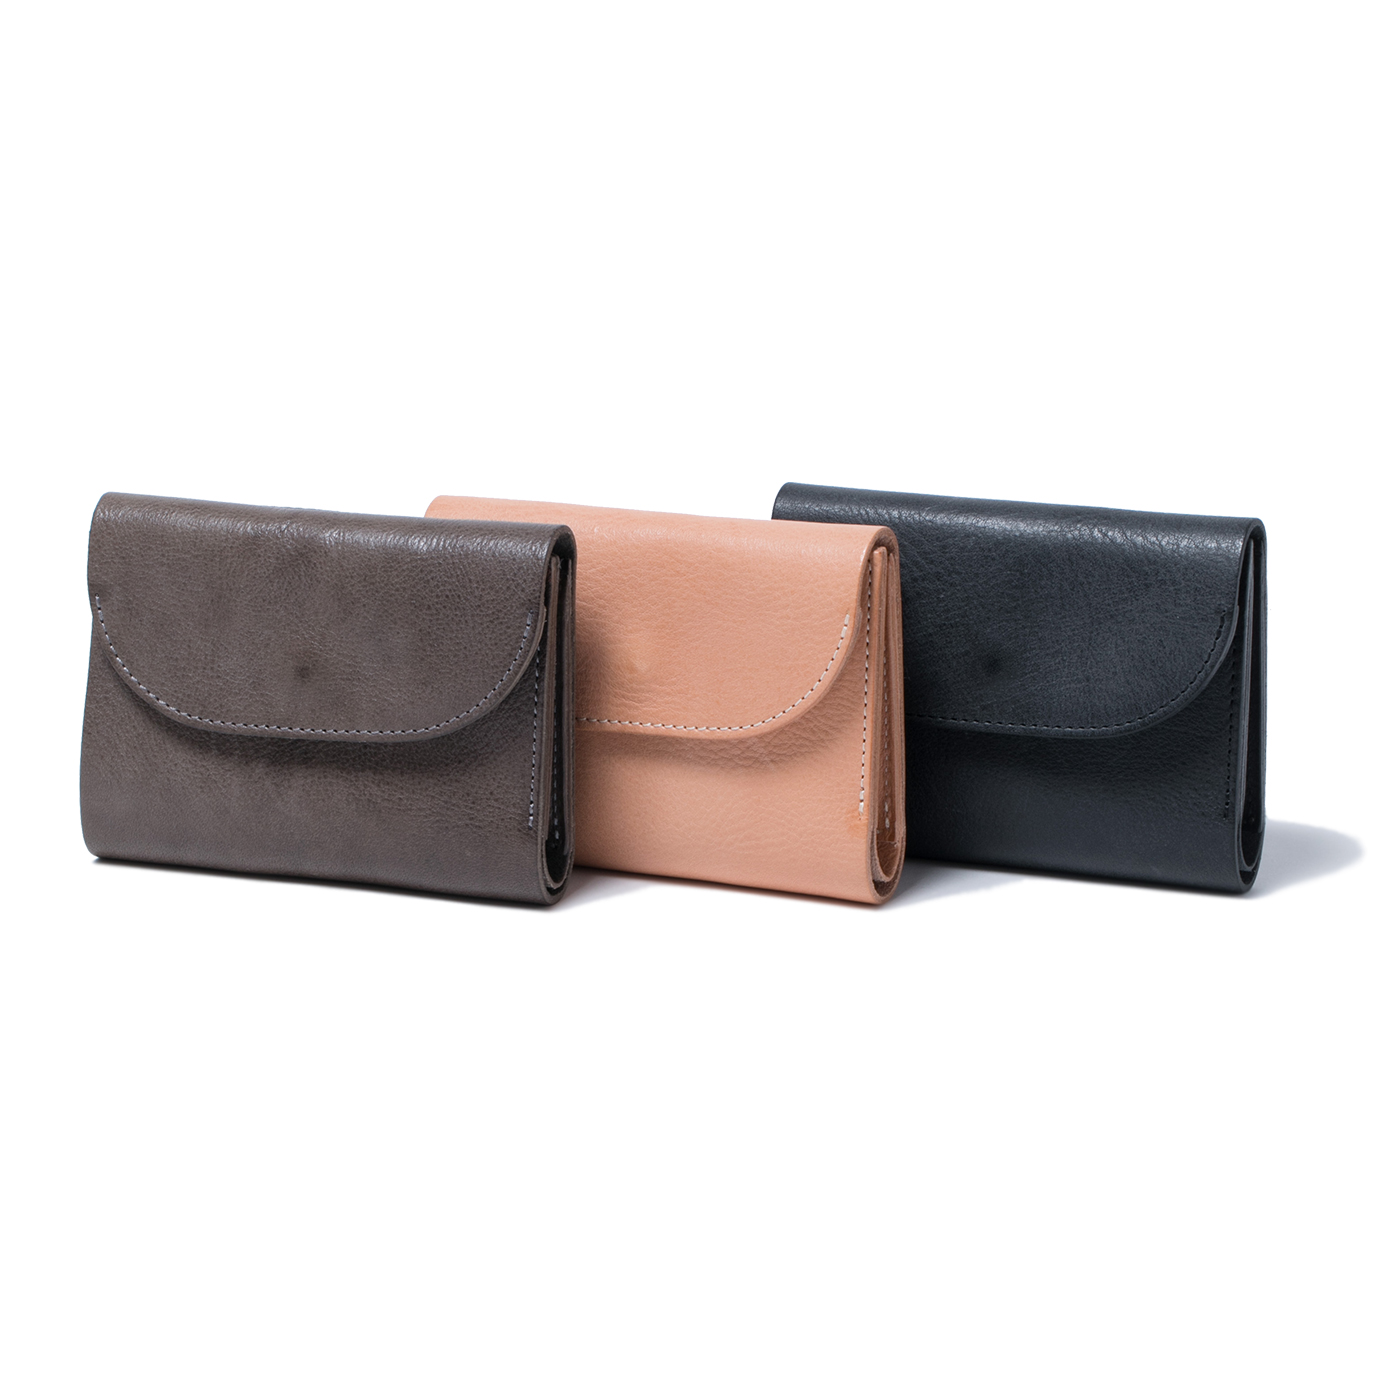 HOBO / Cow Leather Trifold Wallet